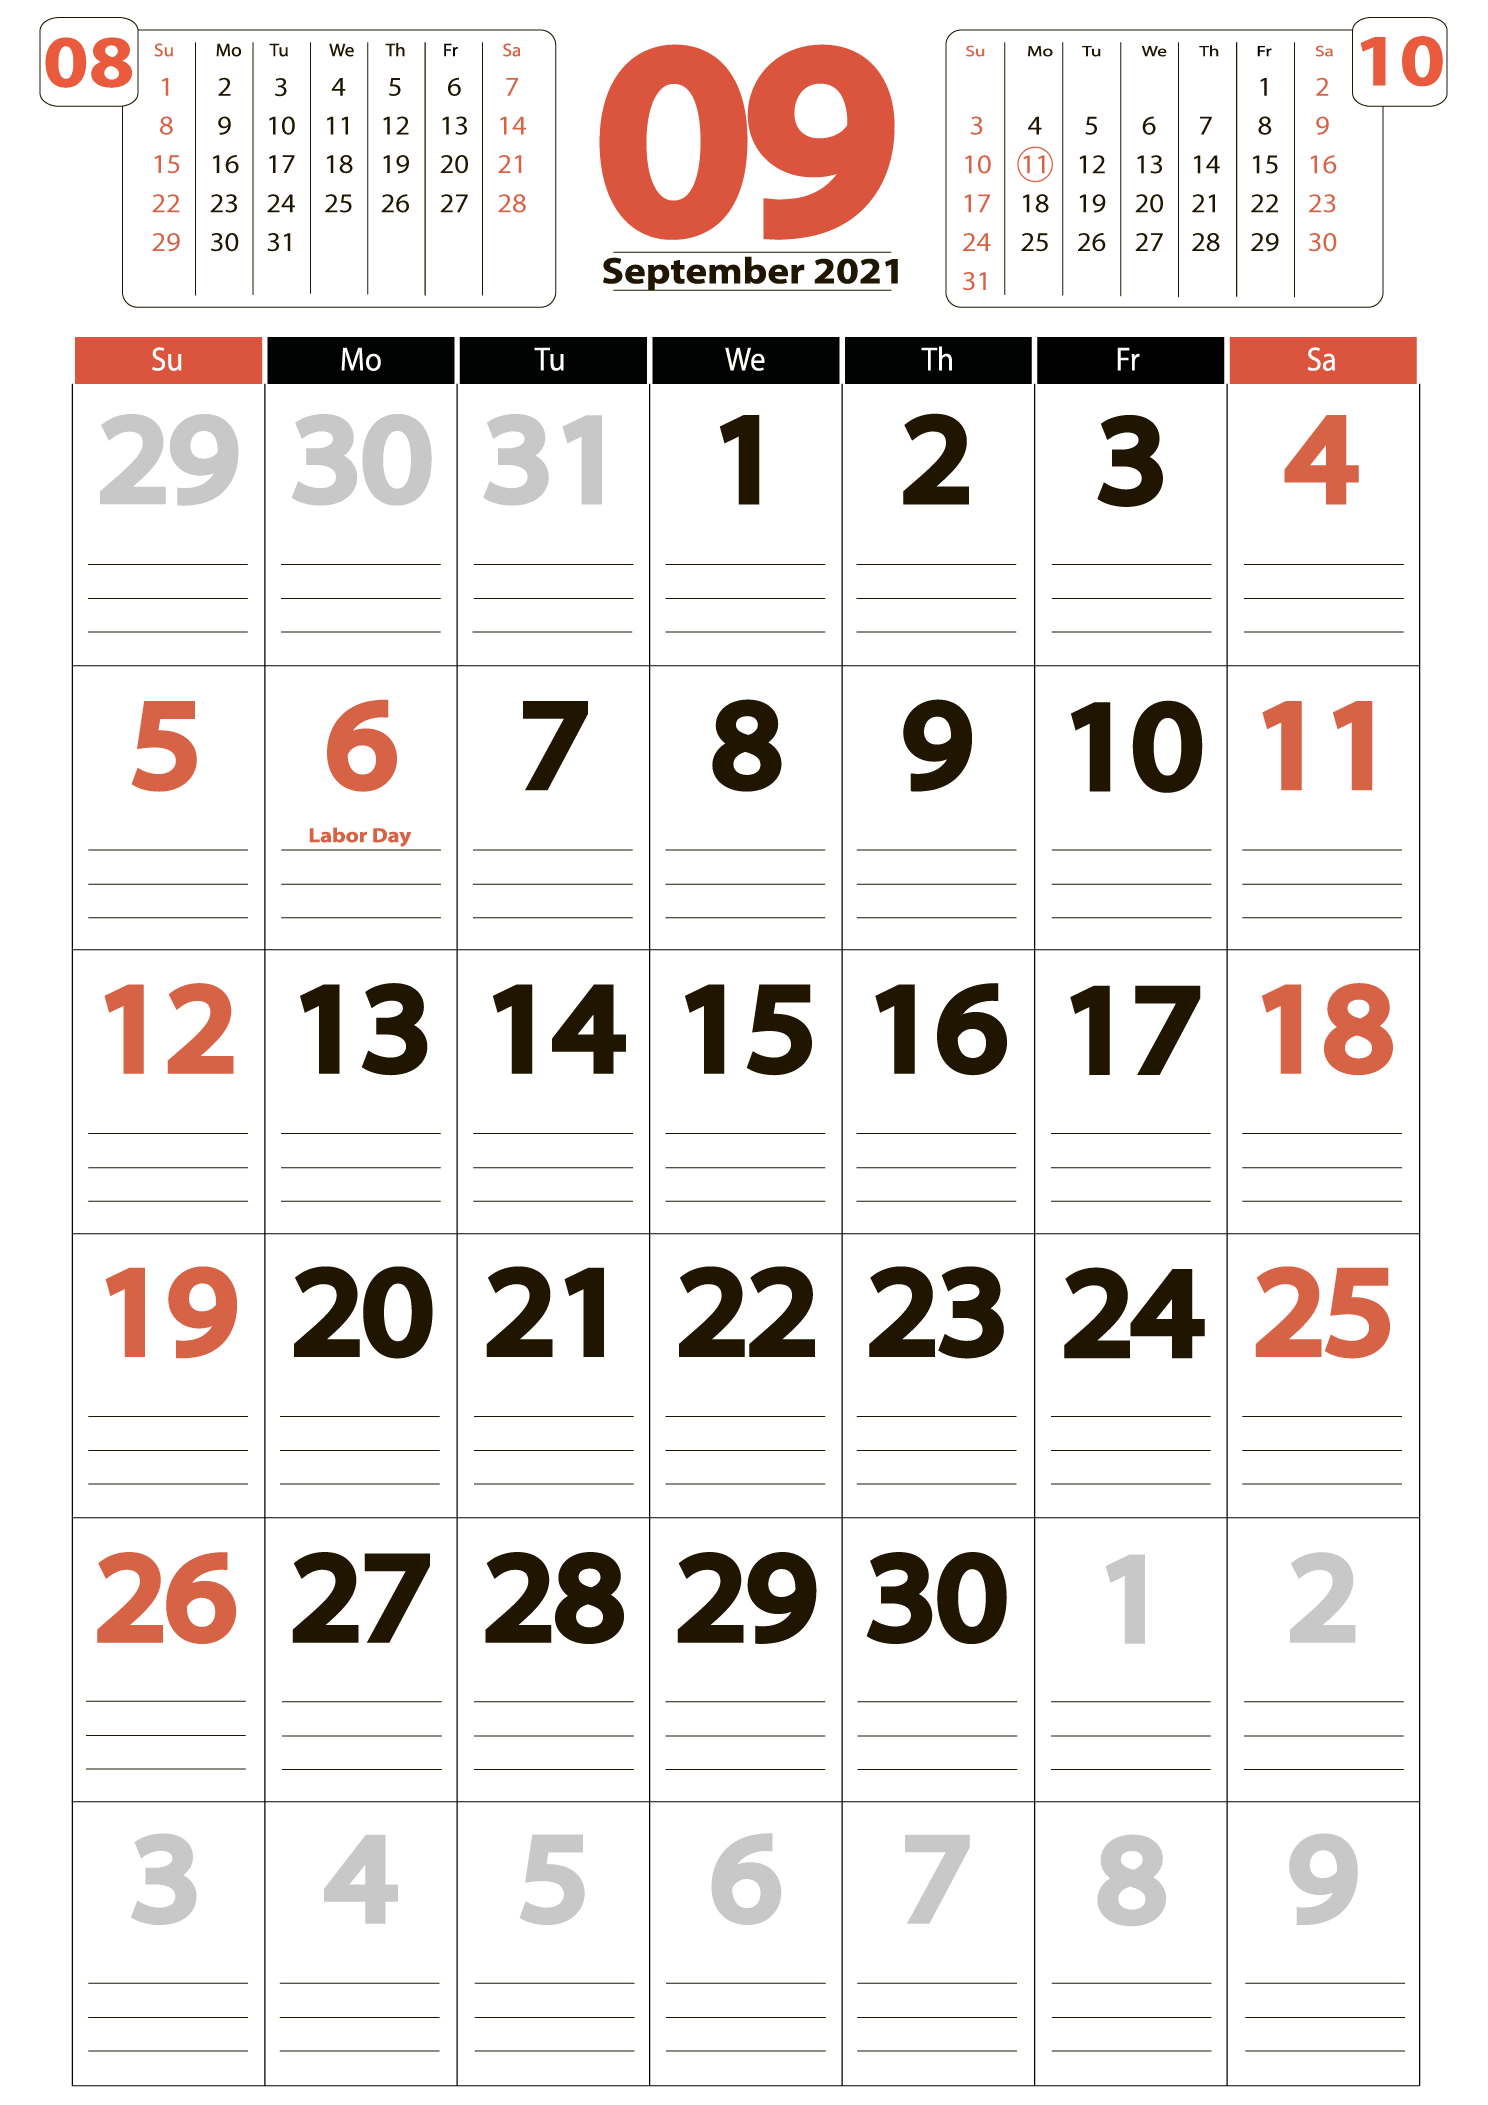 Download calendar 09 2021